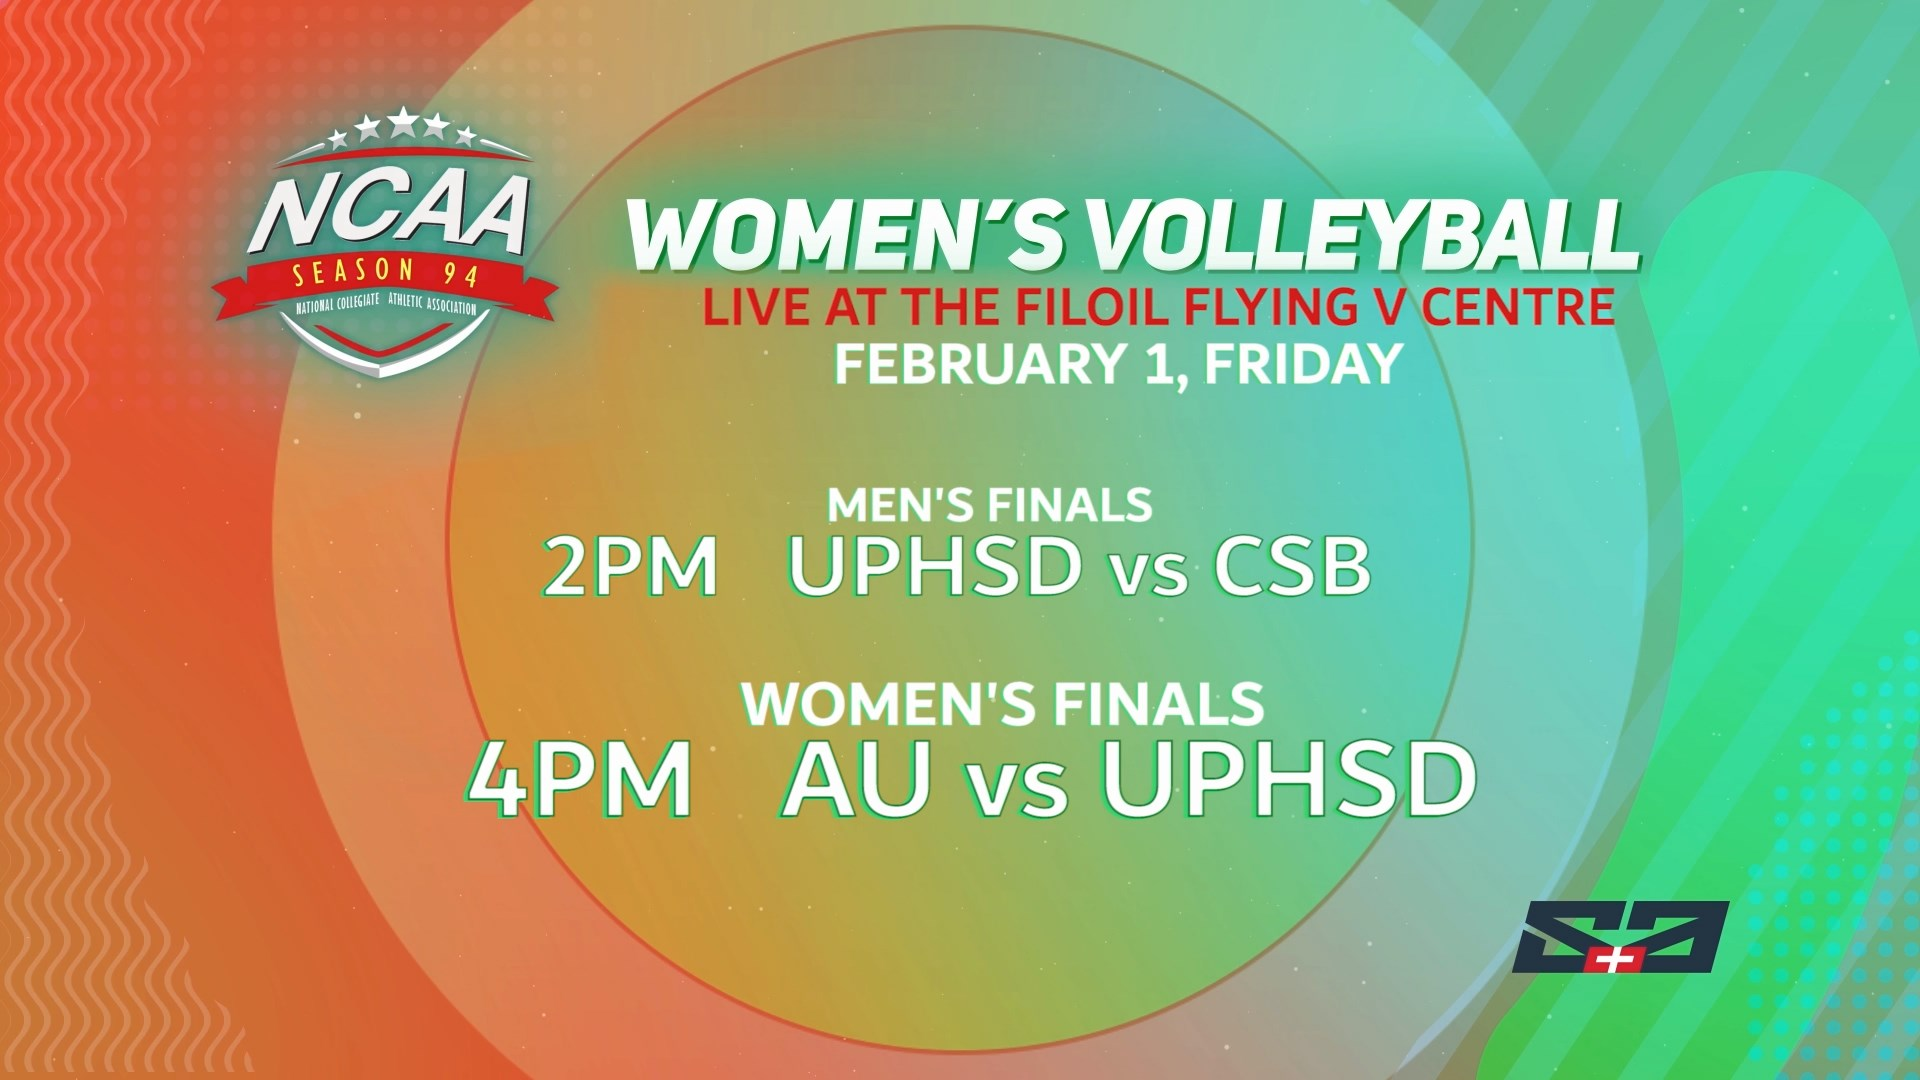 S+A airs NCAA volley finals